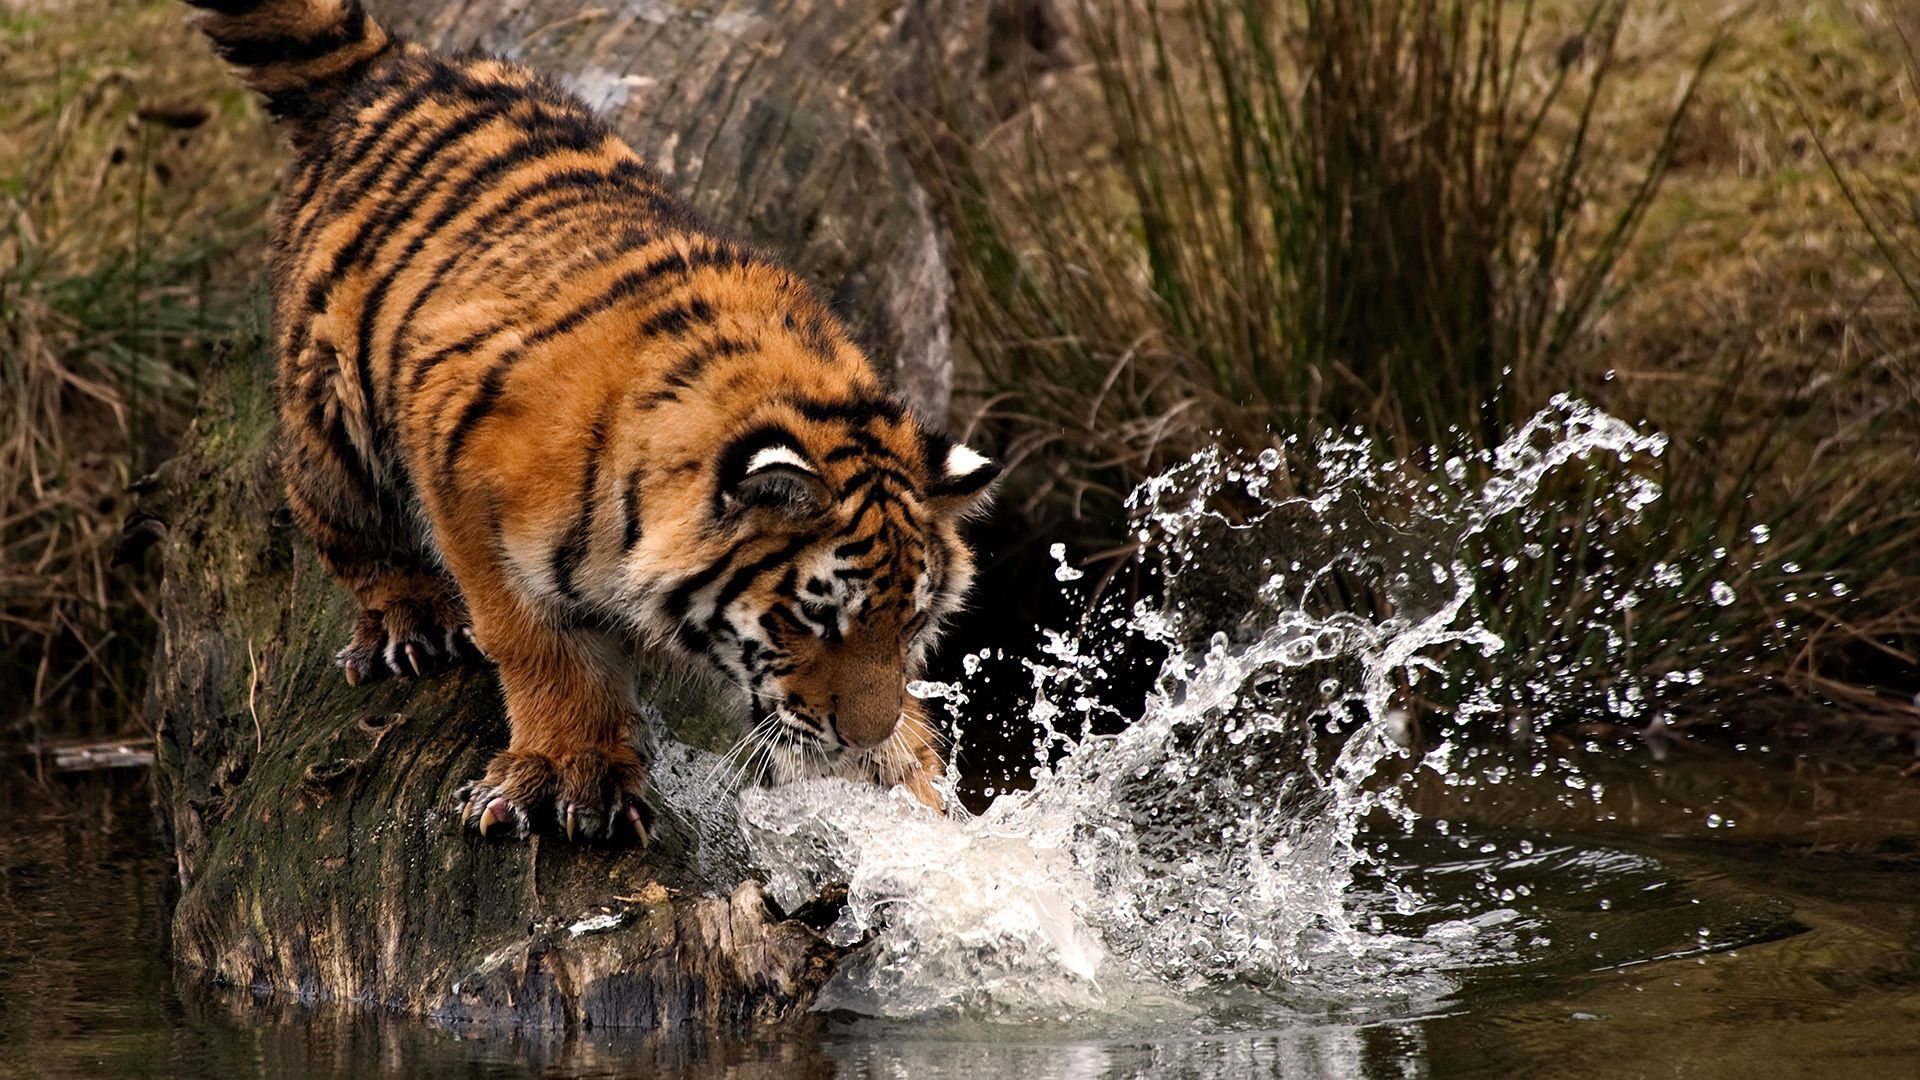 125827 download wallpaper Animals, Tiger, Hunting, Hunt, Water, Spray, Paw screensavers and pictures for free